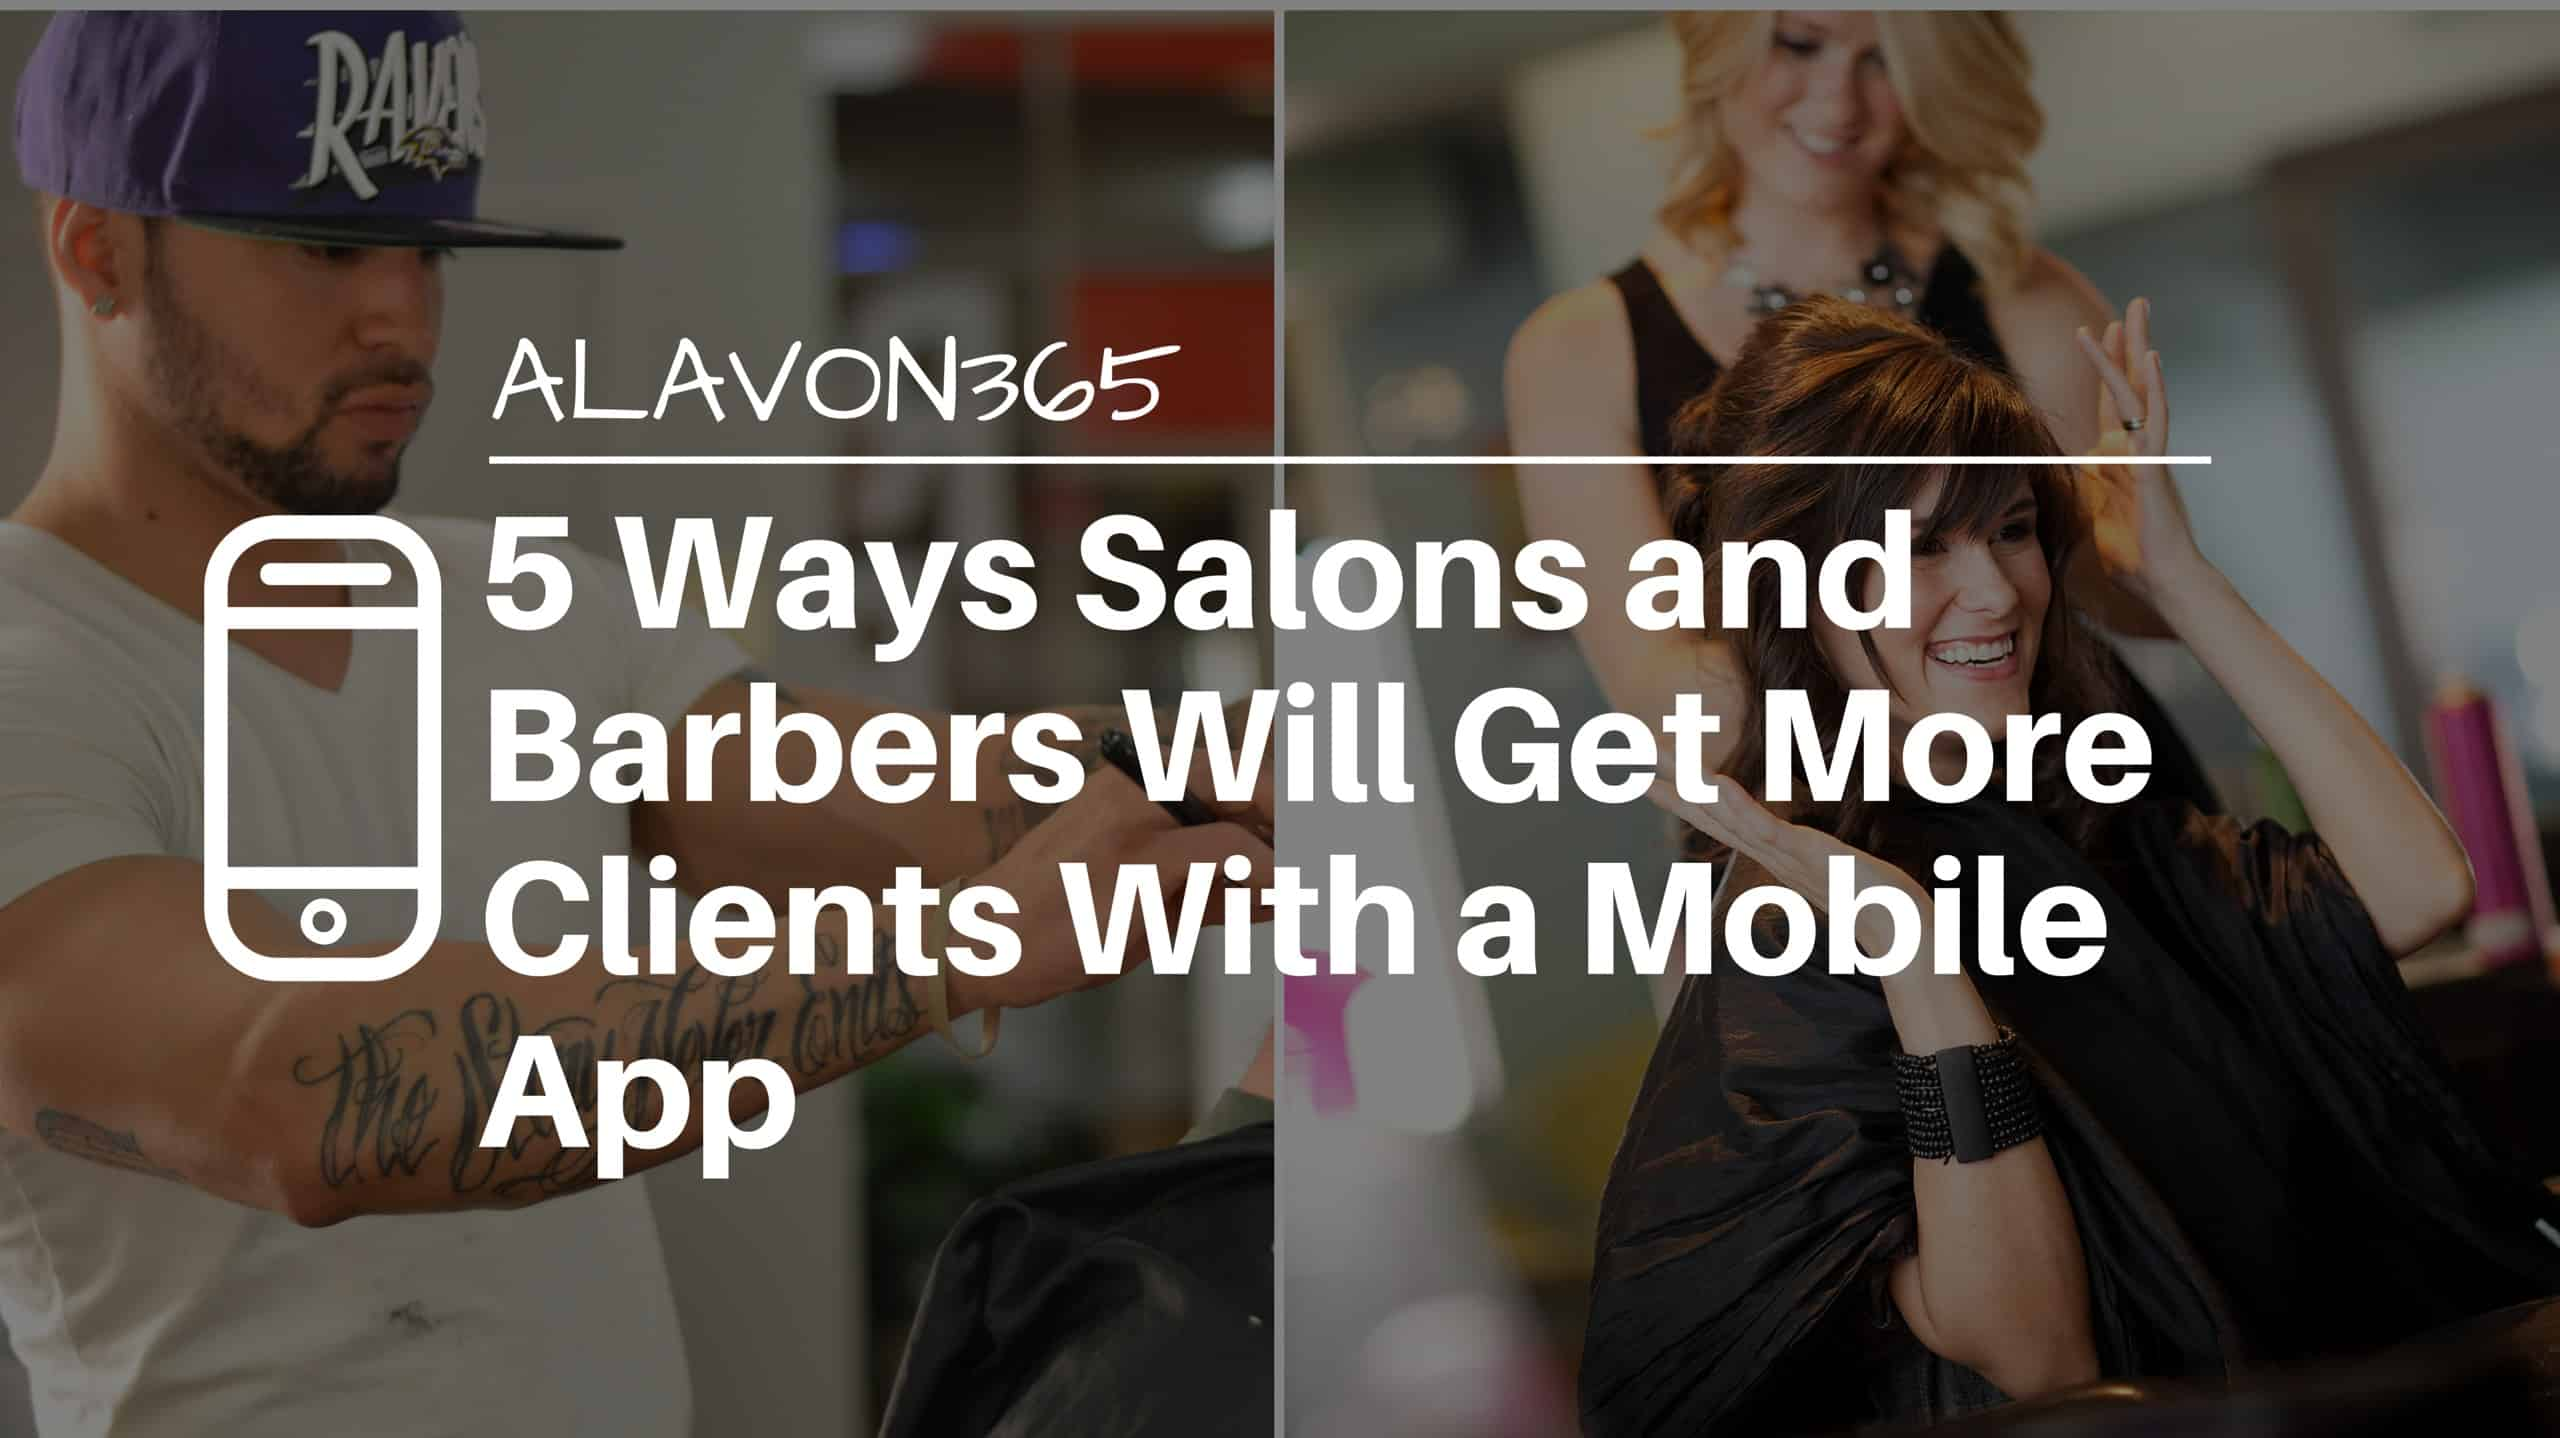 5 Ways Salons and Barbers Will Get More Clients With a Mobile App